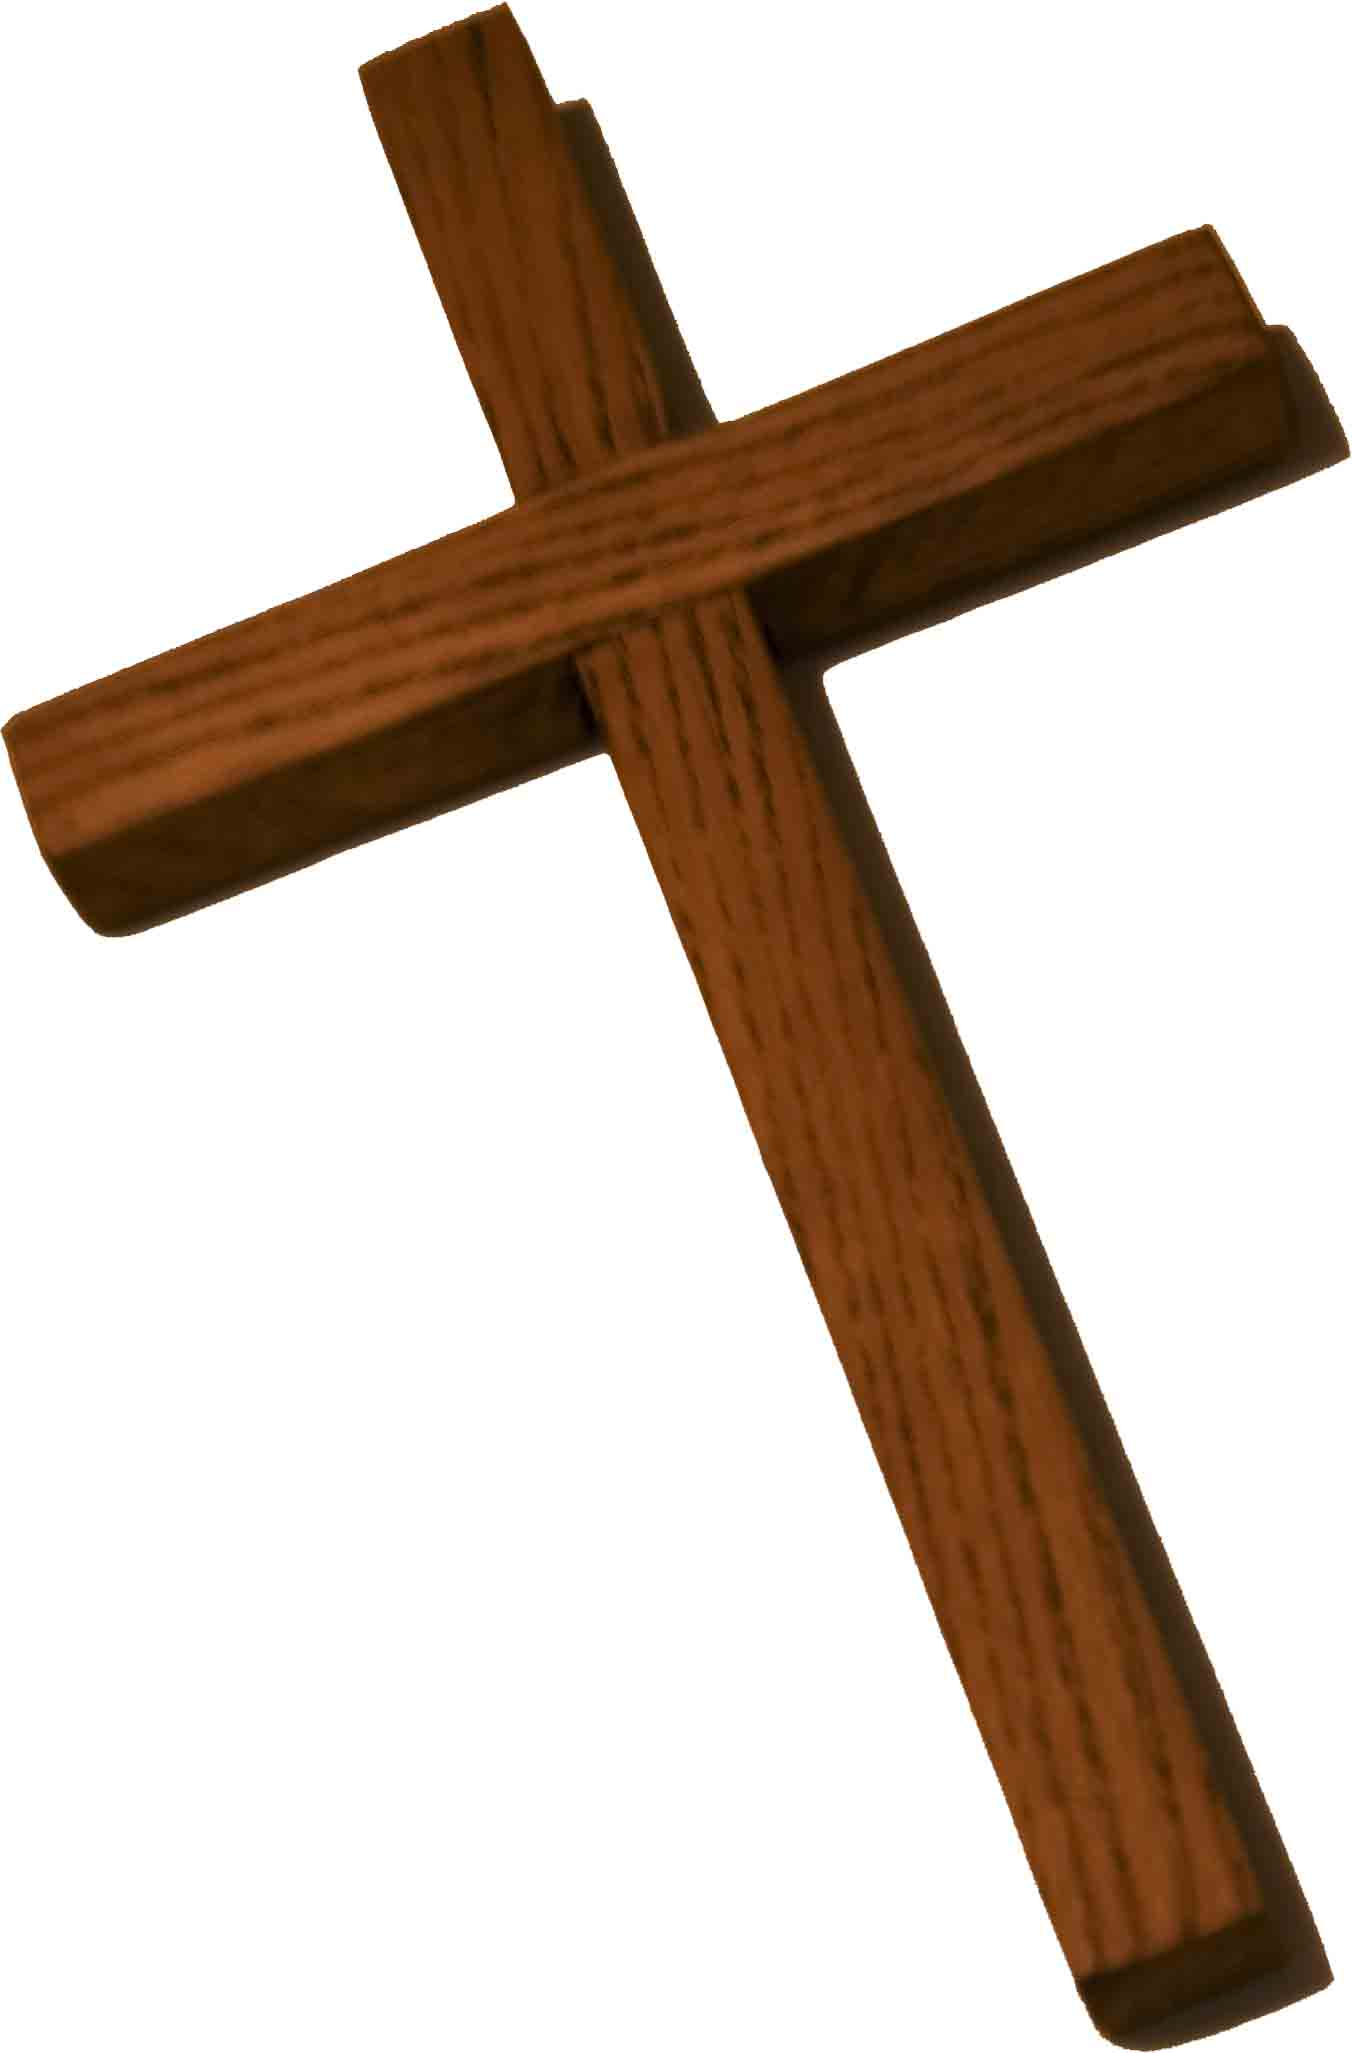 Wooden Cross Clipart Free Download Best Wooden Cross